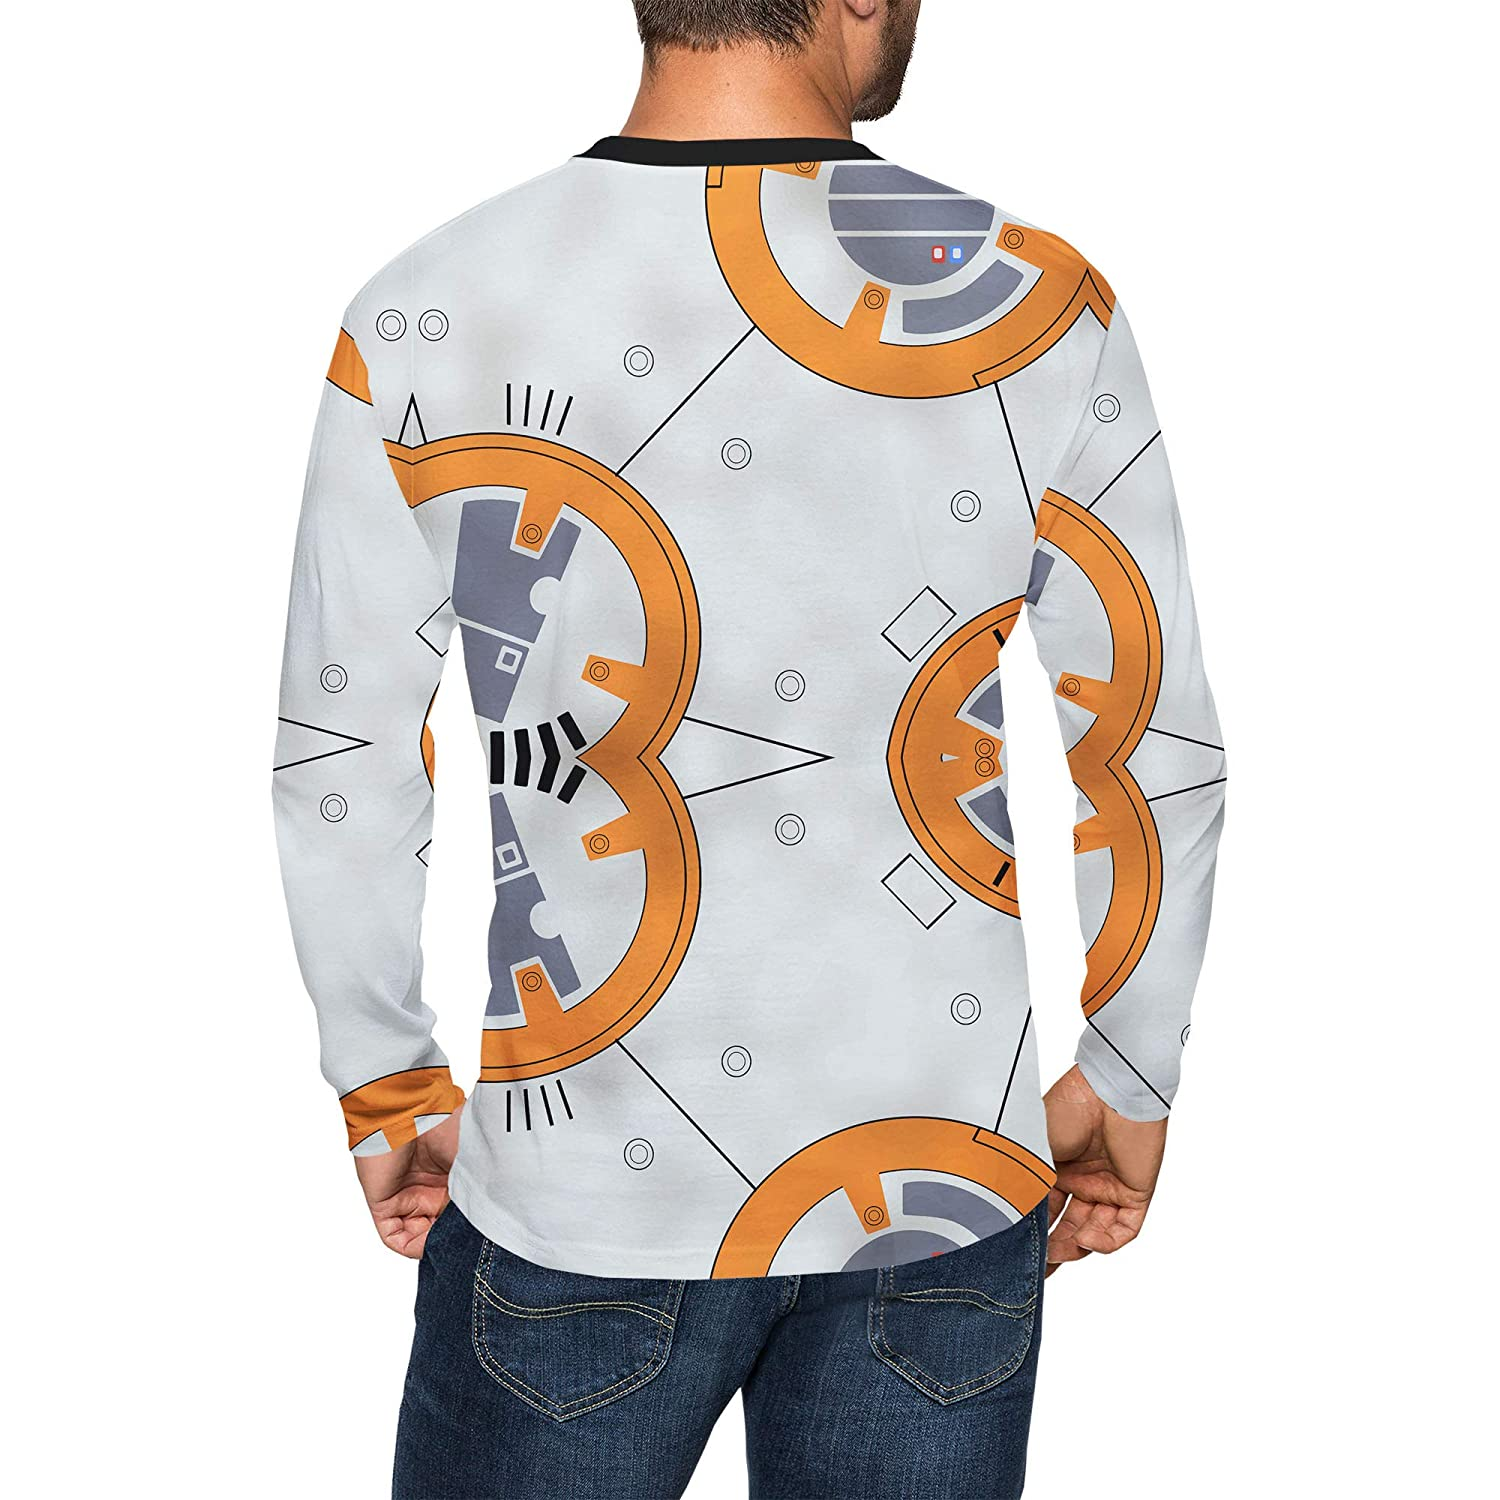 Queen of Cases Little Round Droid Mens Longsleeve Tee